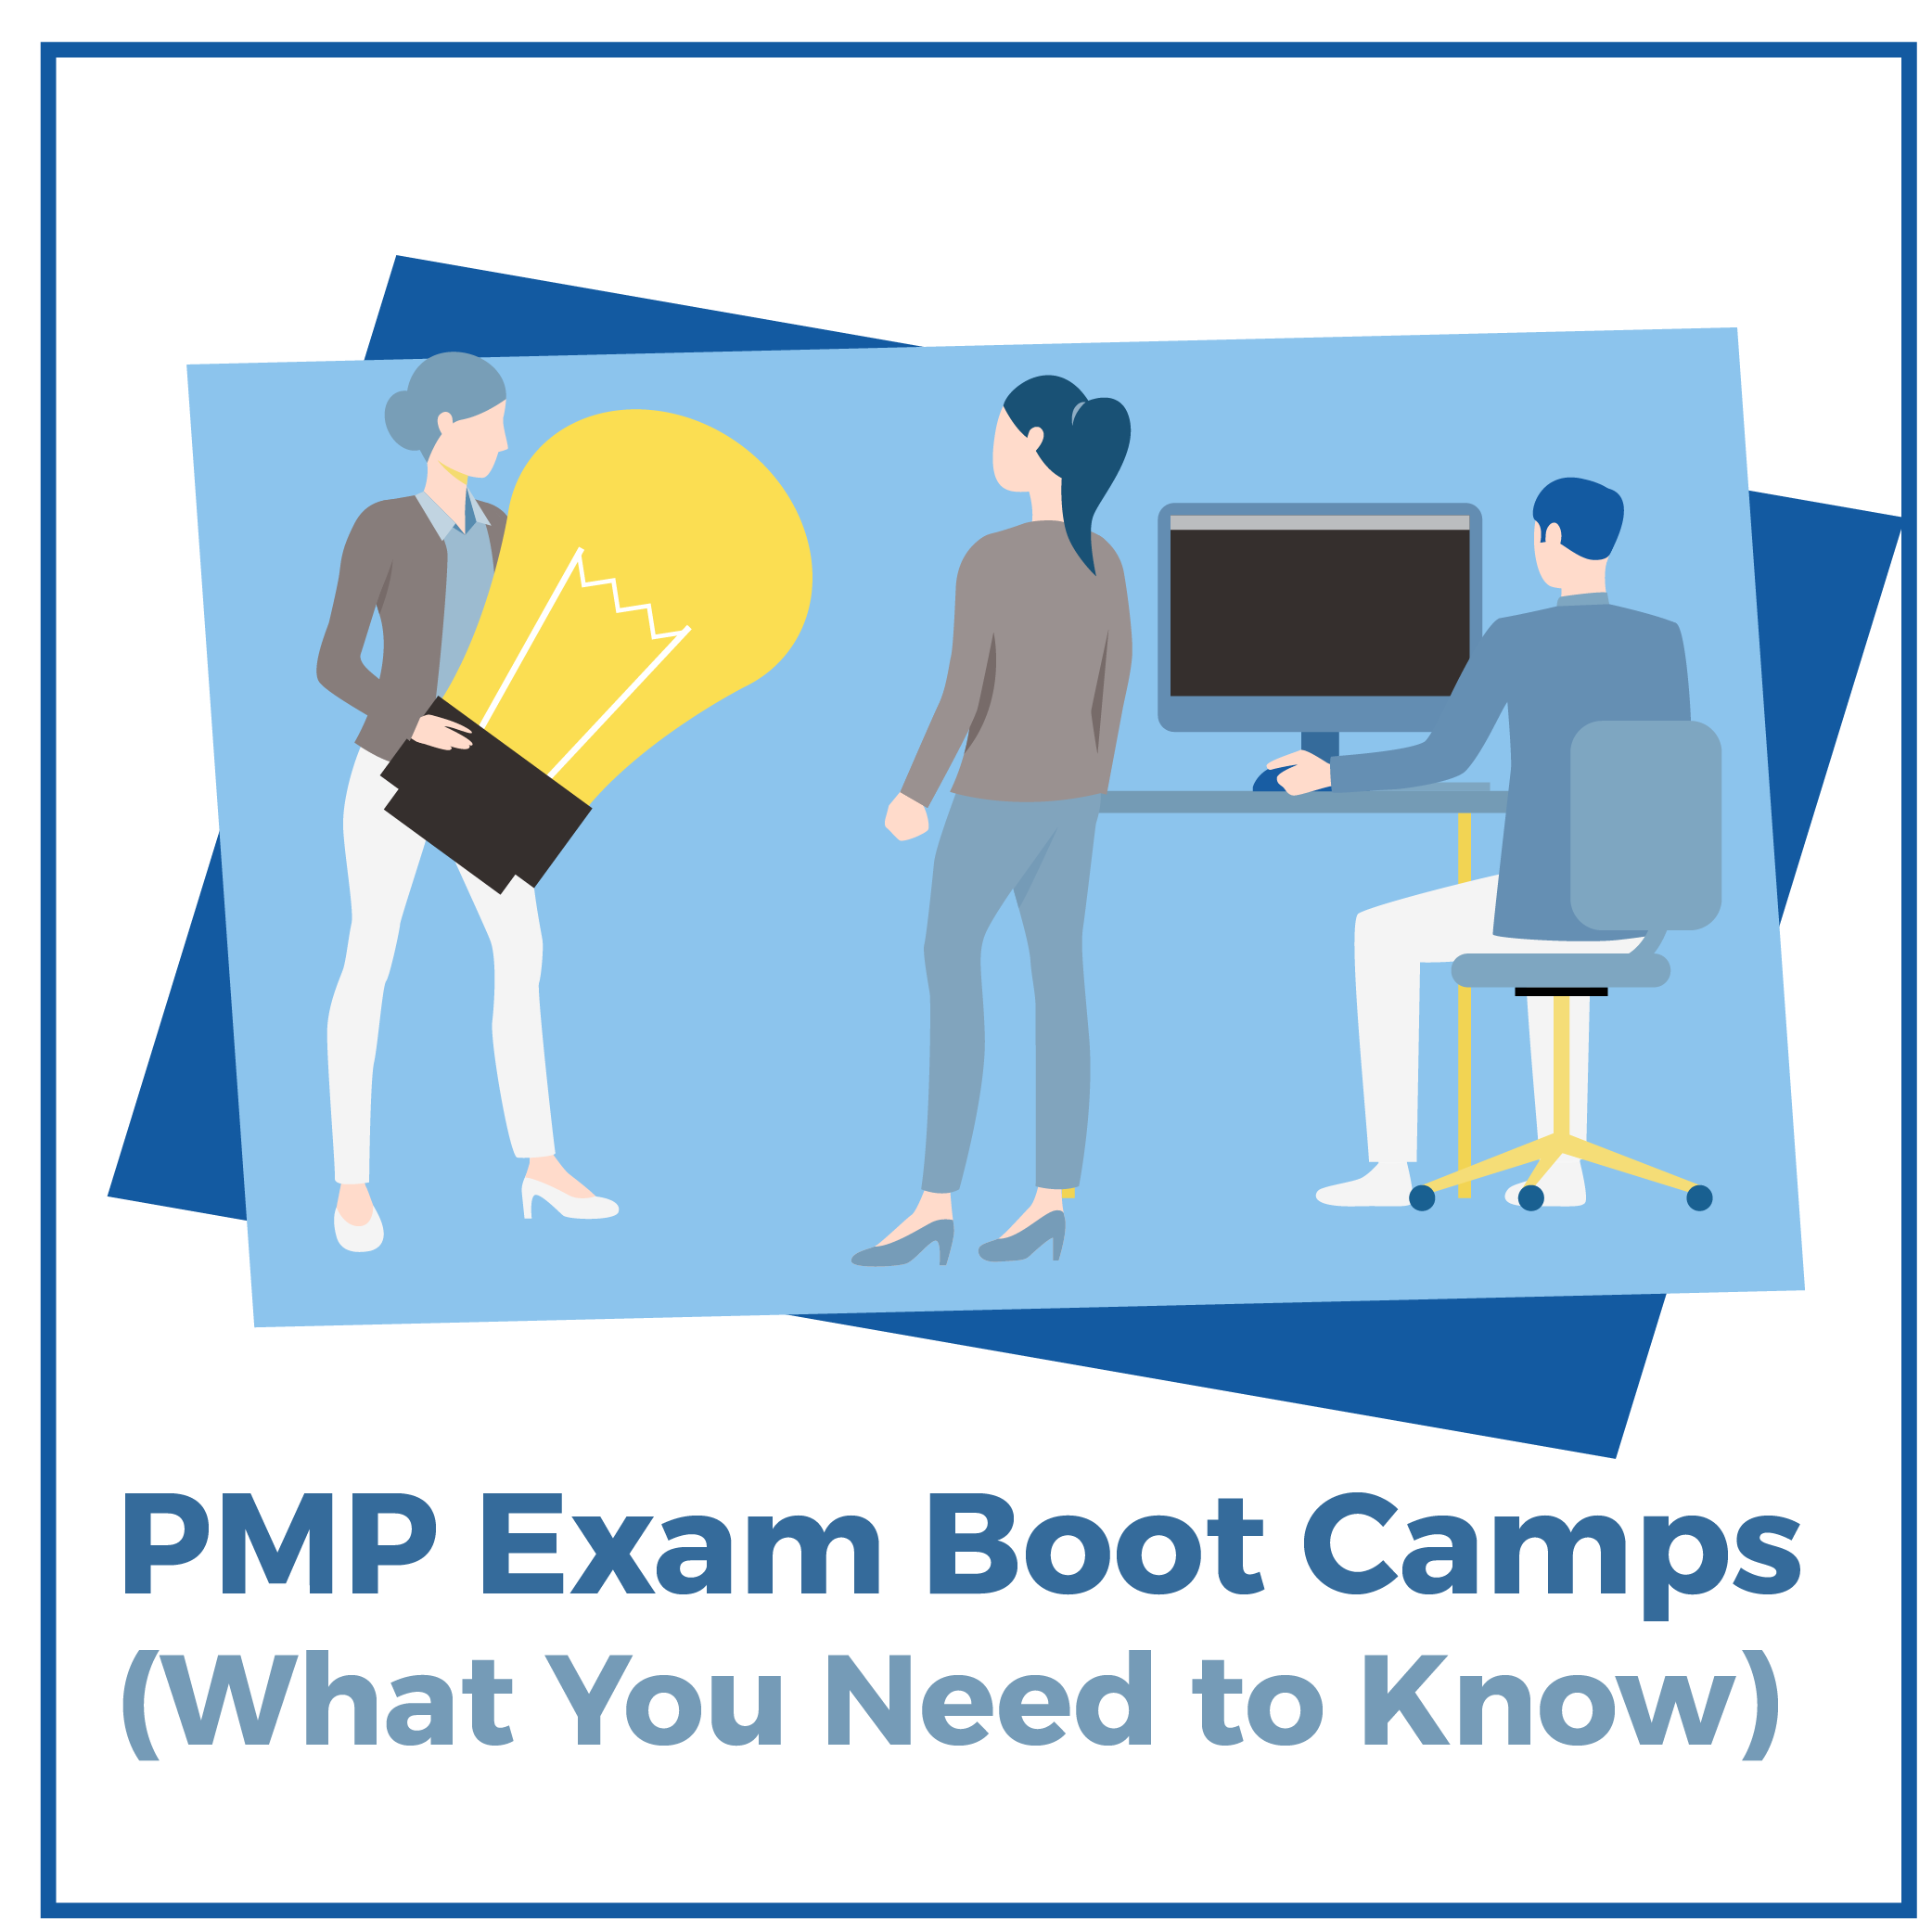 PMP Exam Boot Camps